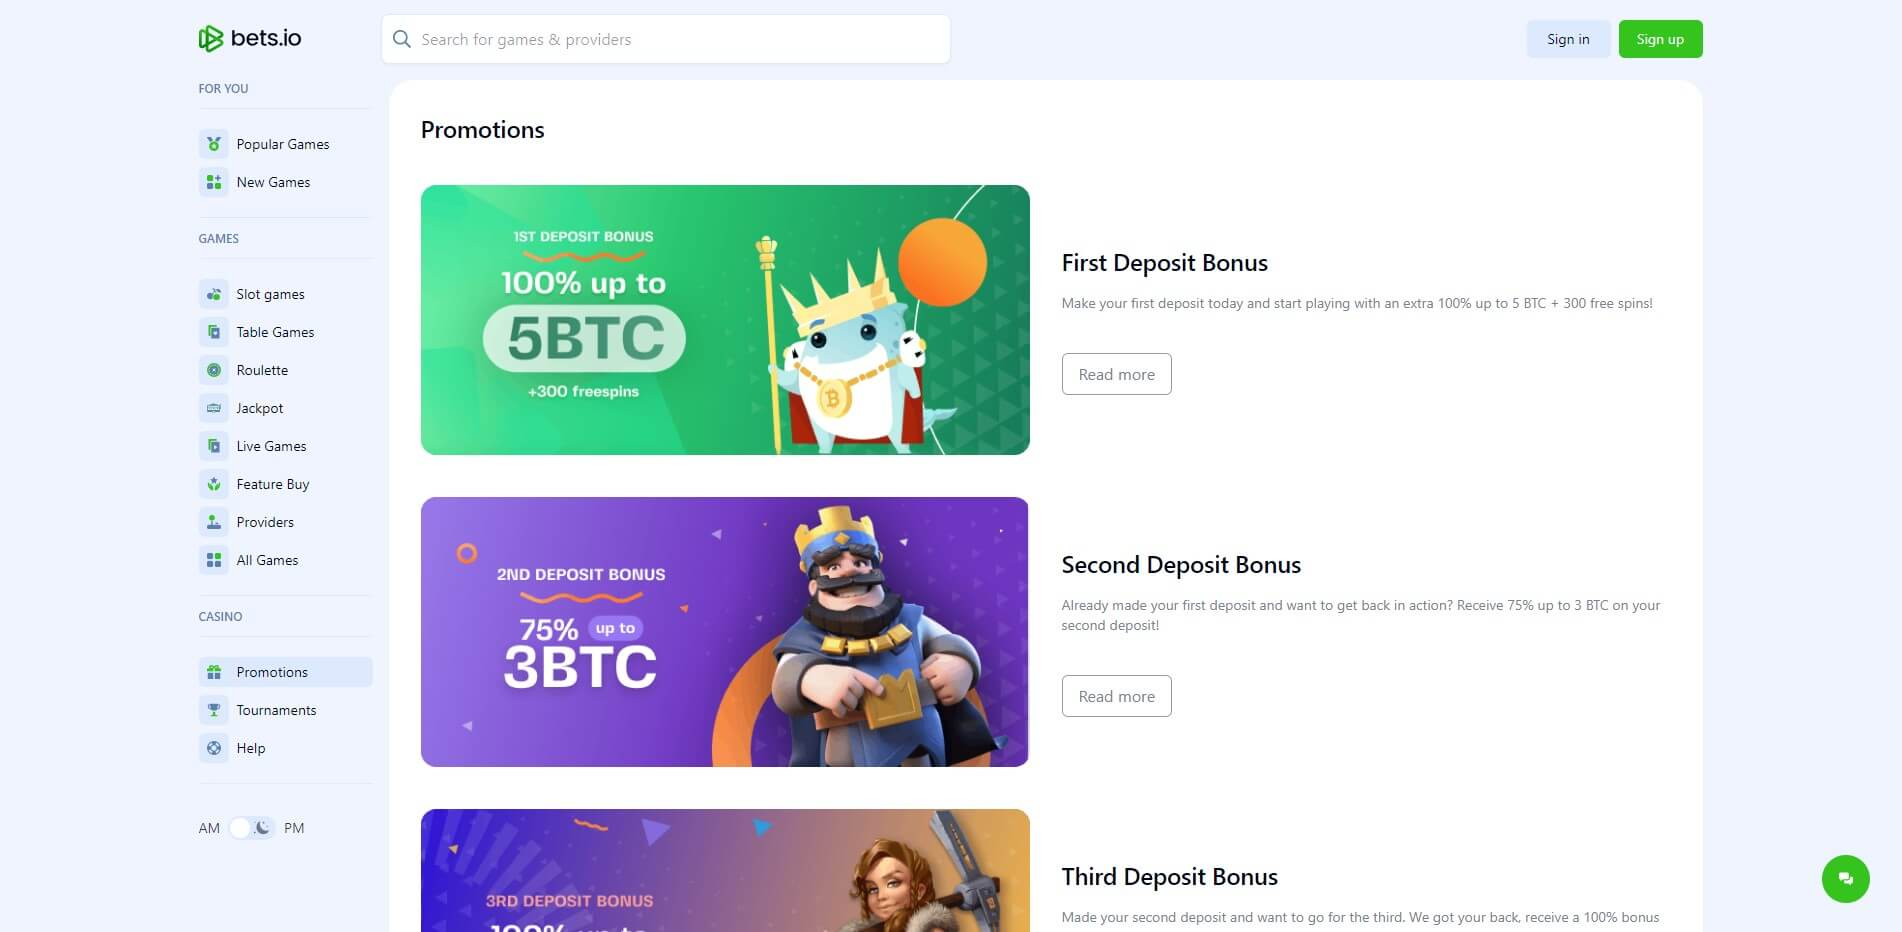 Promotions at Bets.io Casino